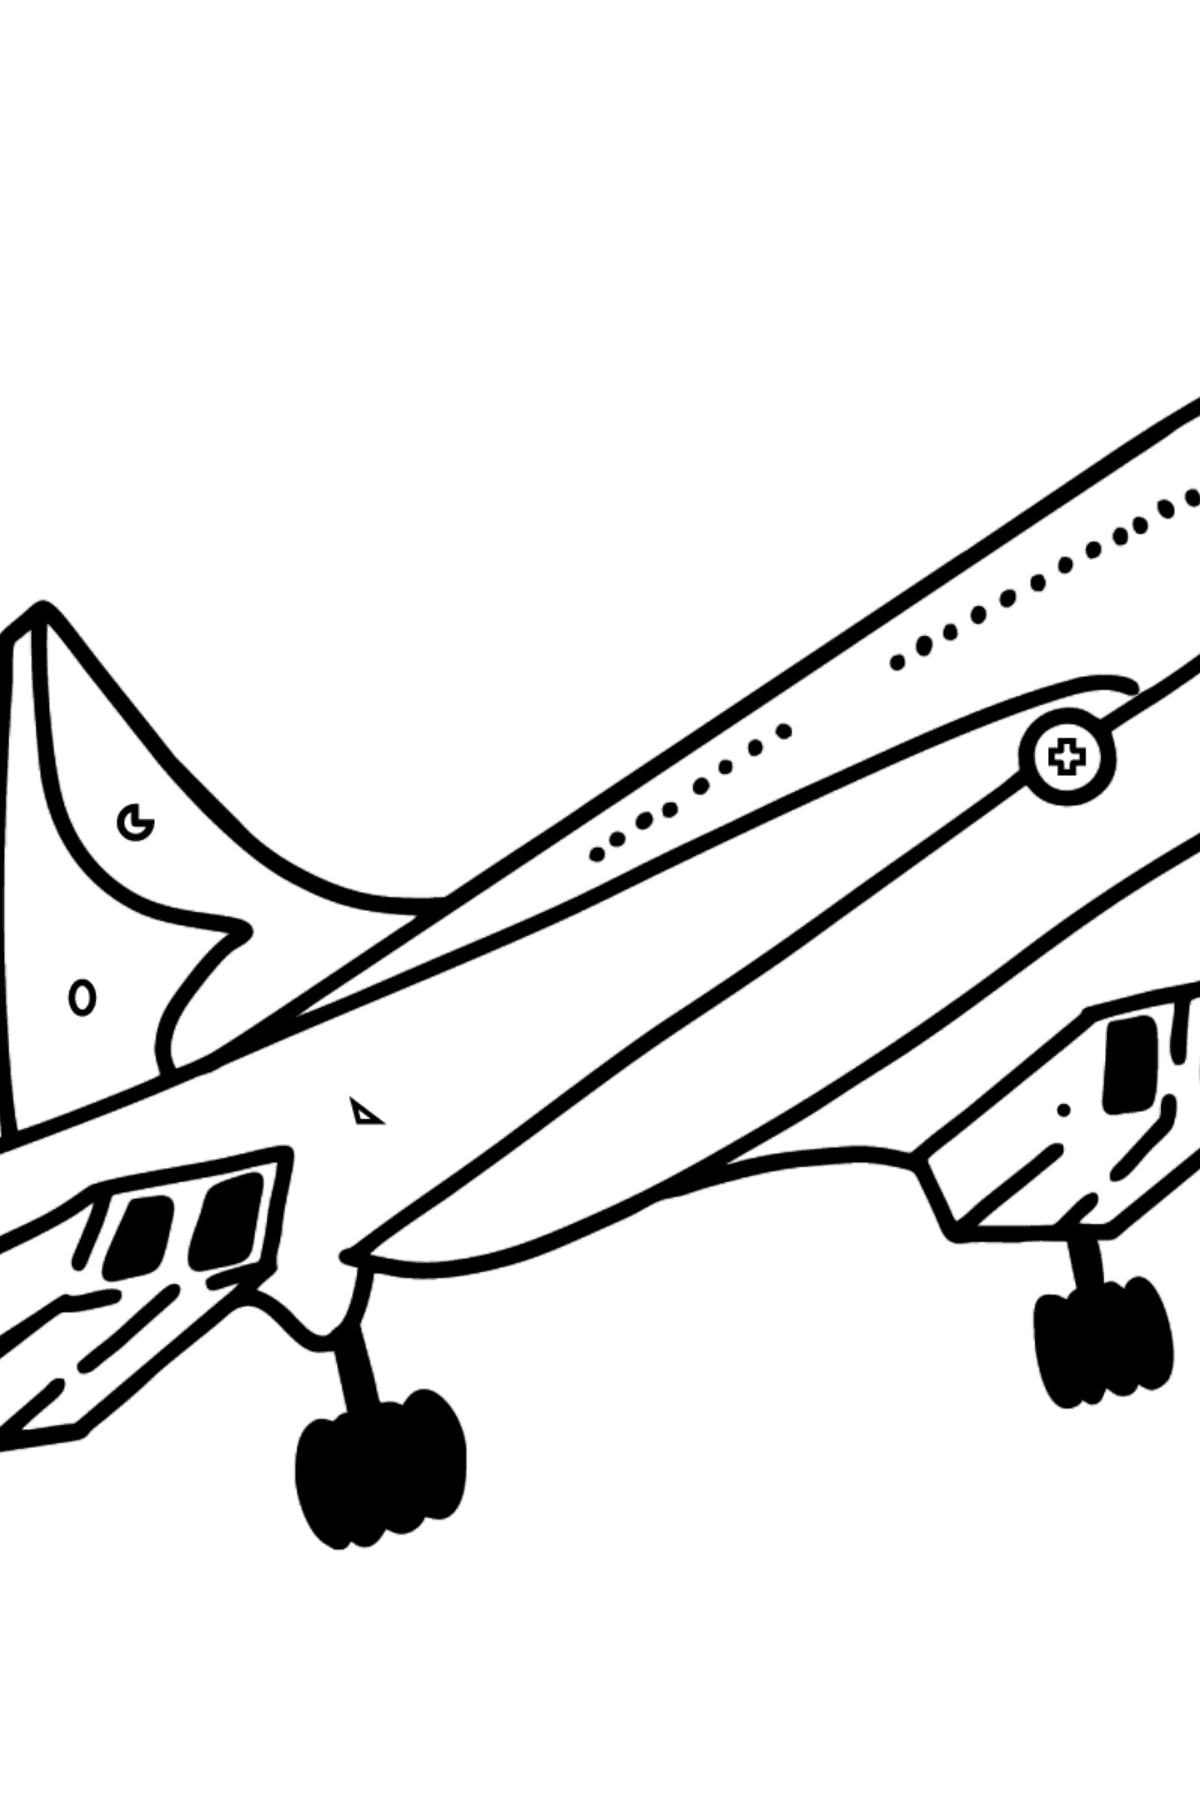 Concorde coloring page - Coloring by Symbols and Geometric Shapes for Kids